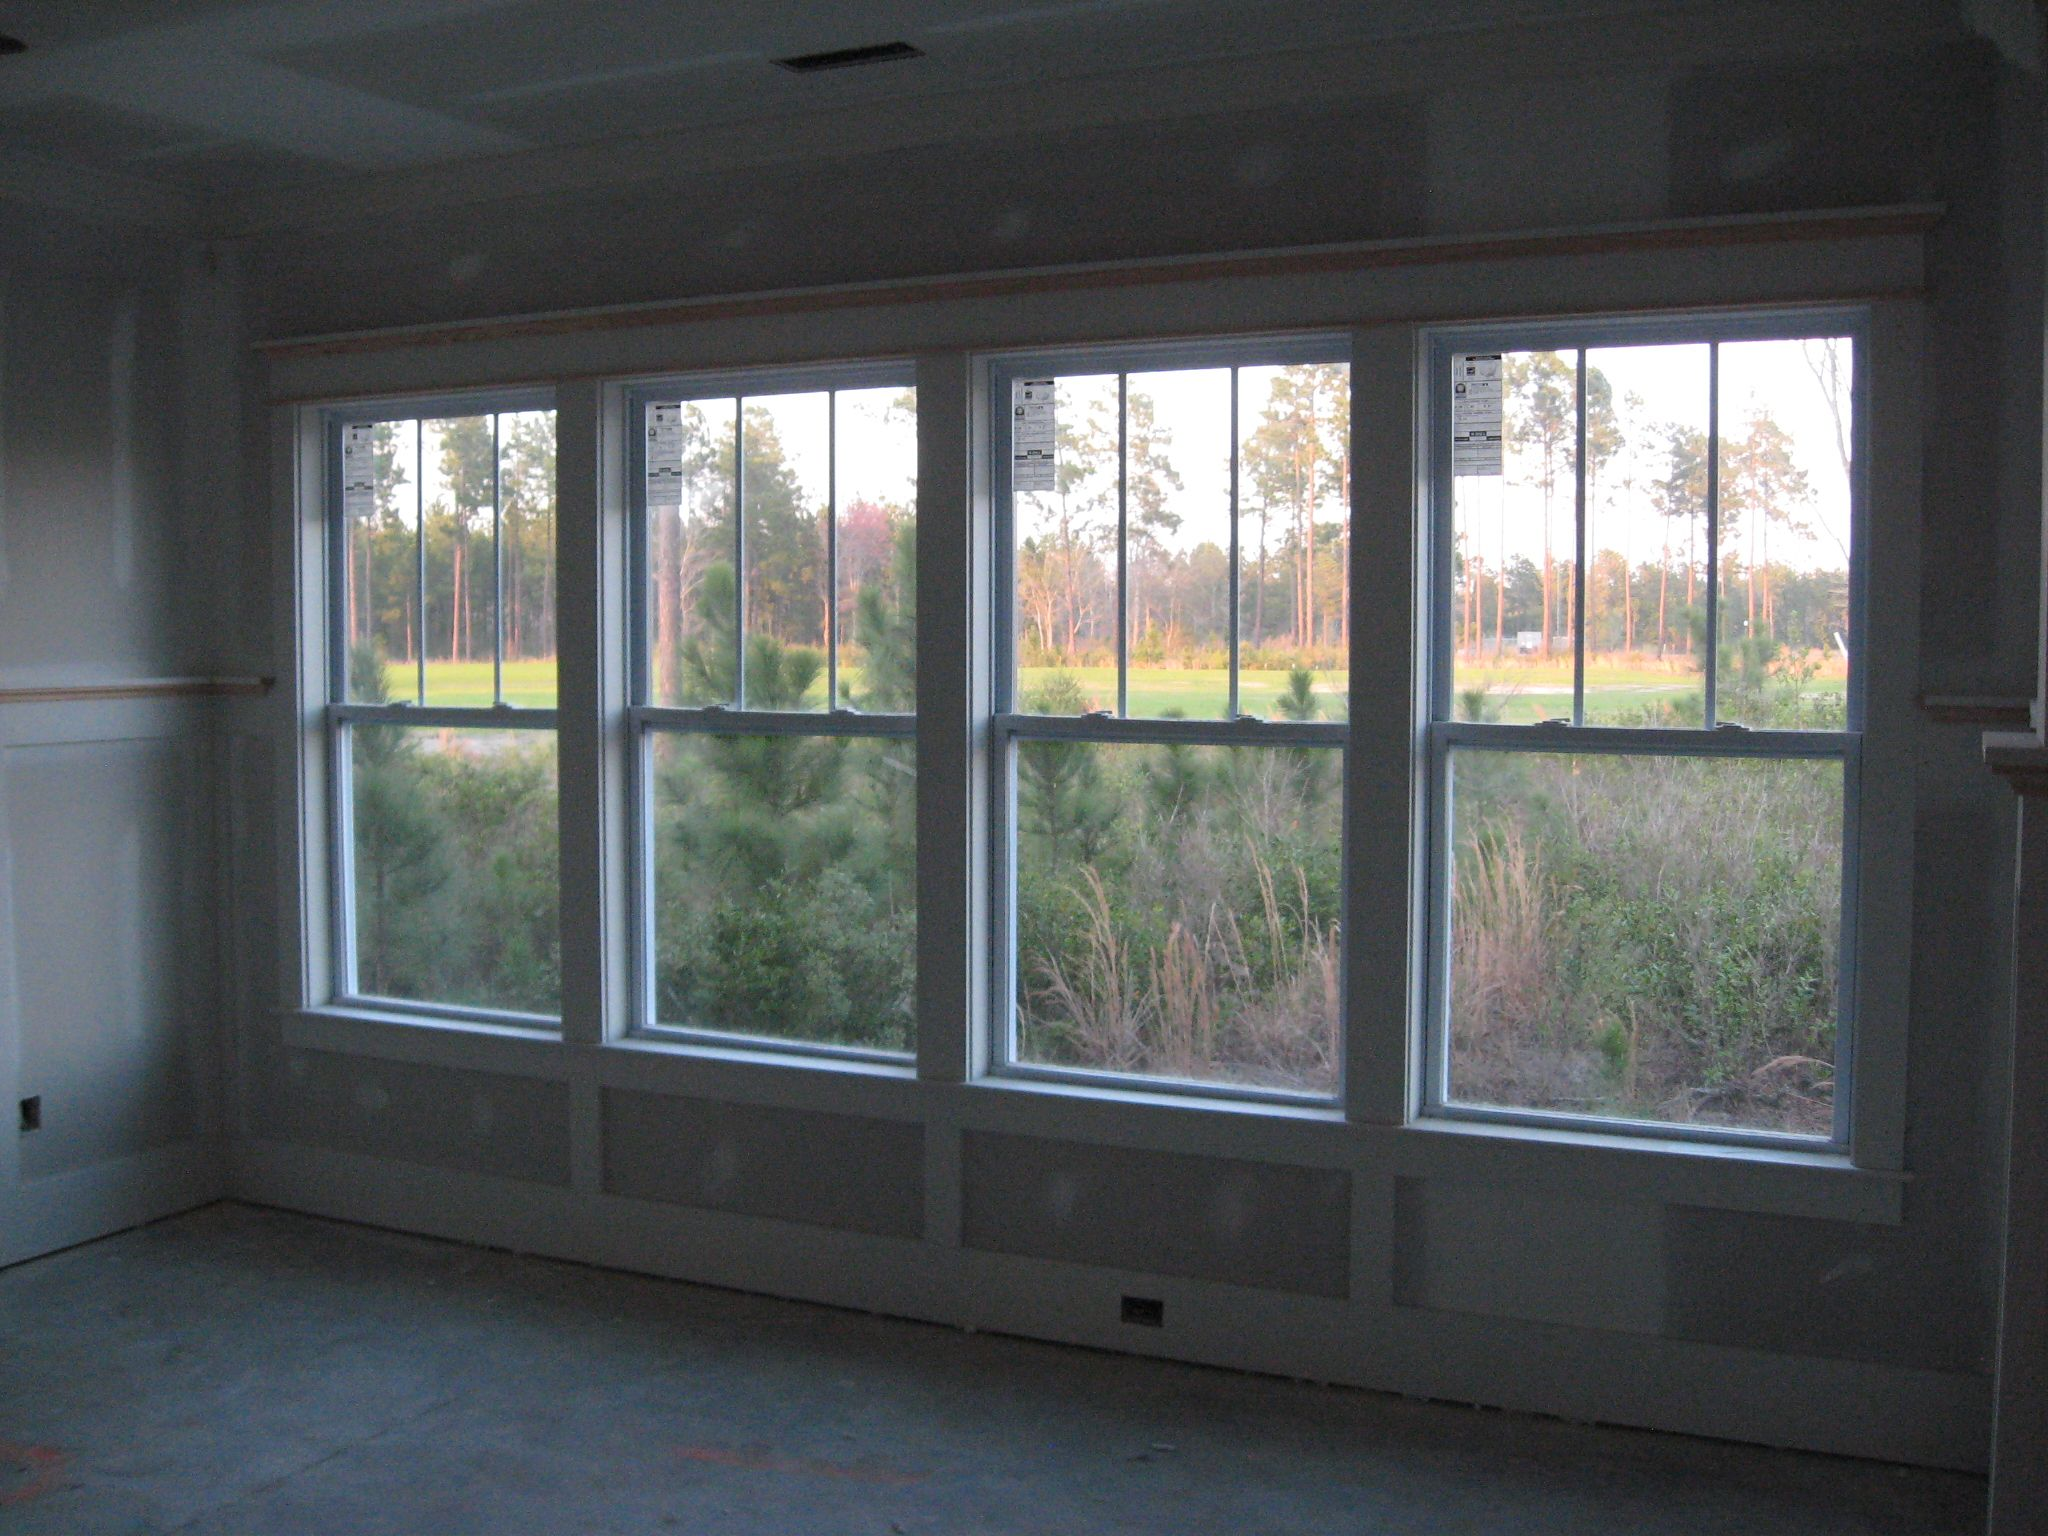 Dining Room Windows 4 Ranch House Exterior House Exterior House Windows